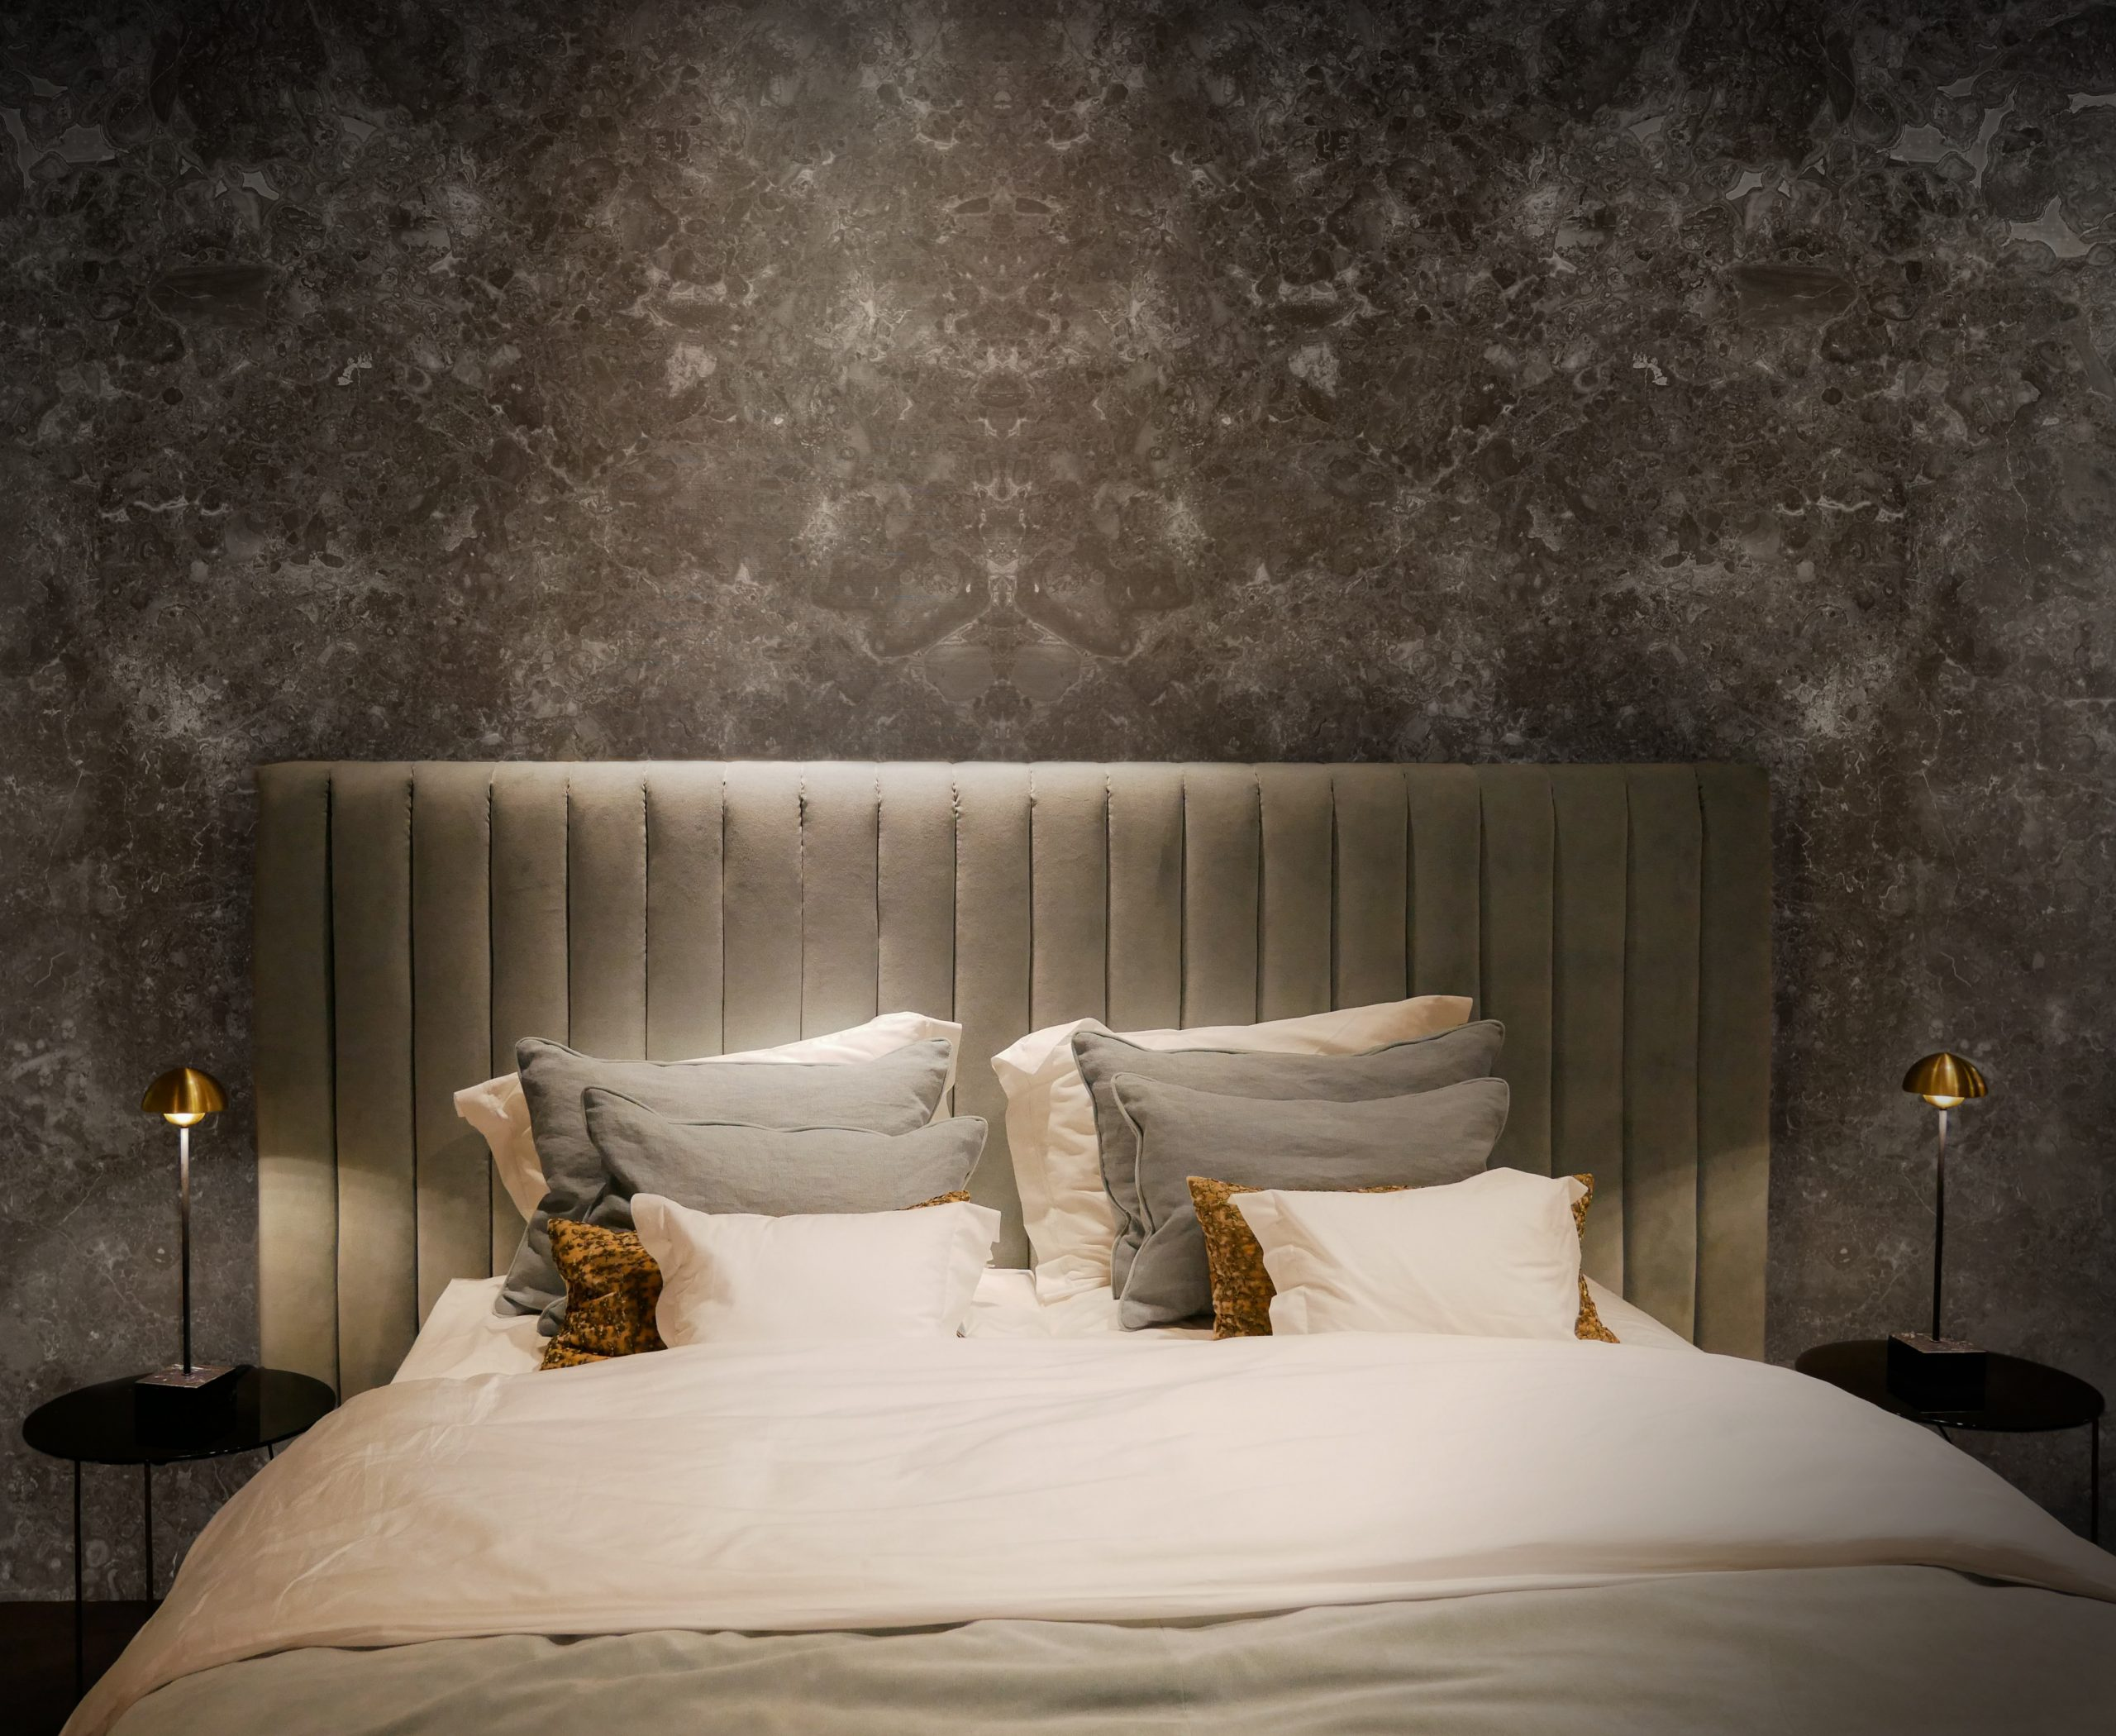 Bedroom surface decorating ideas